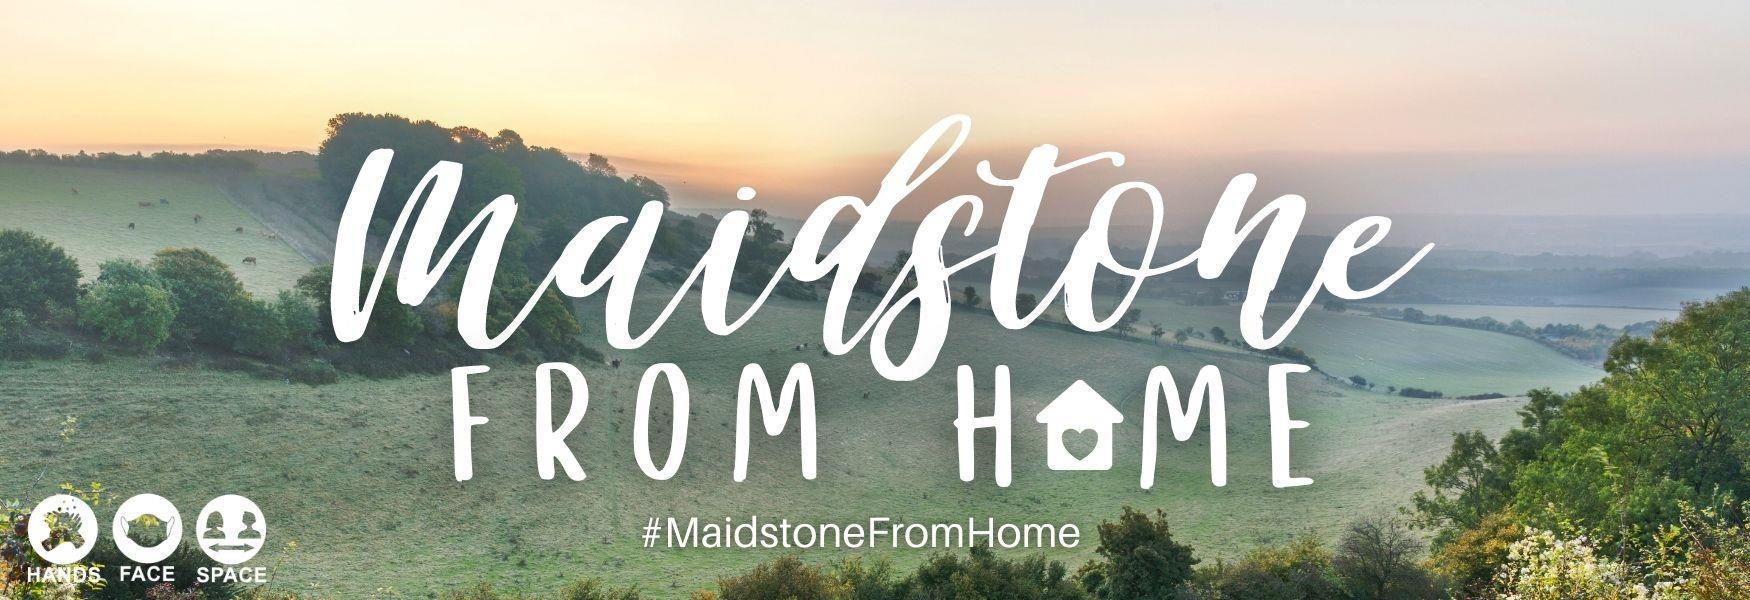 #Maidstonefromhome